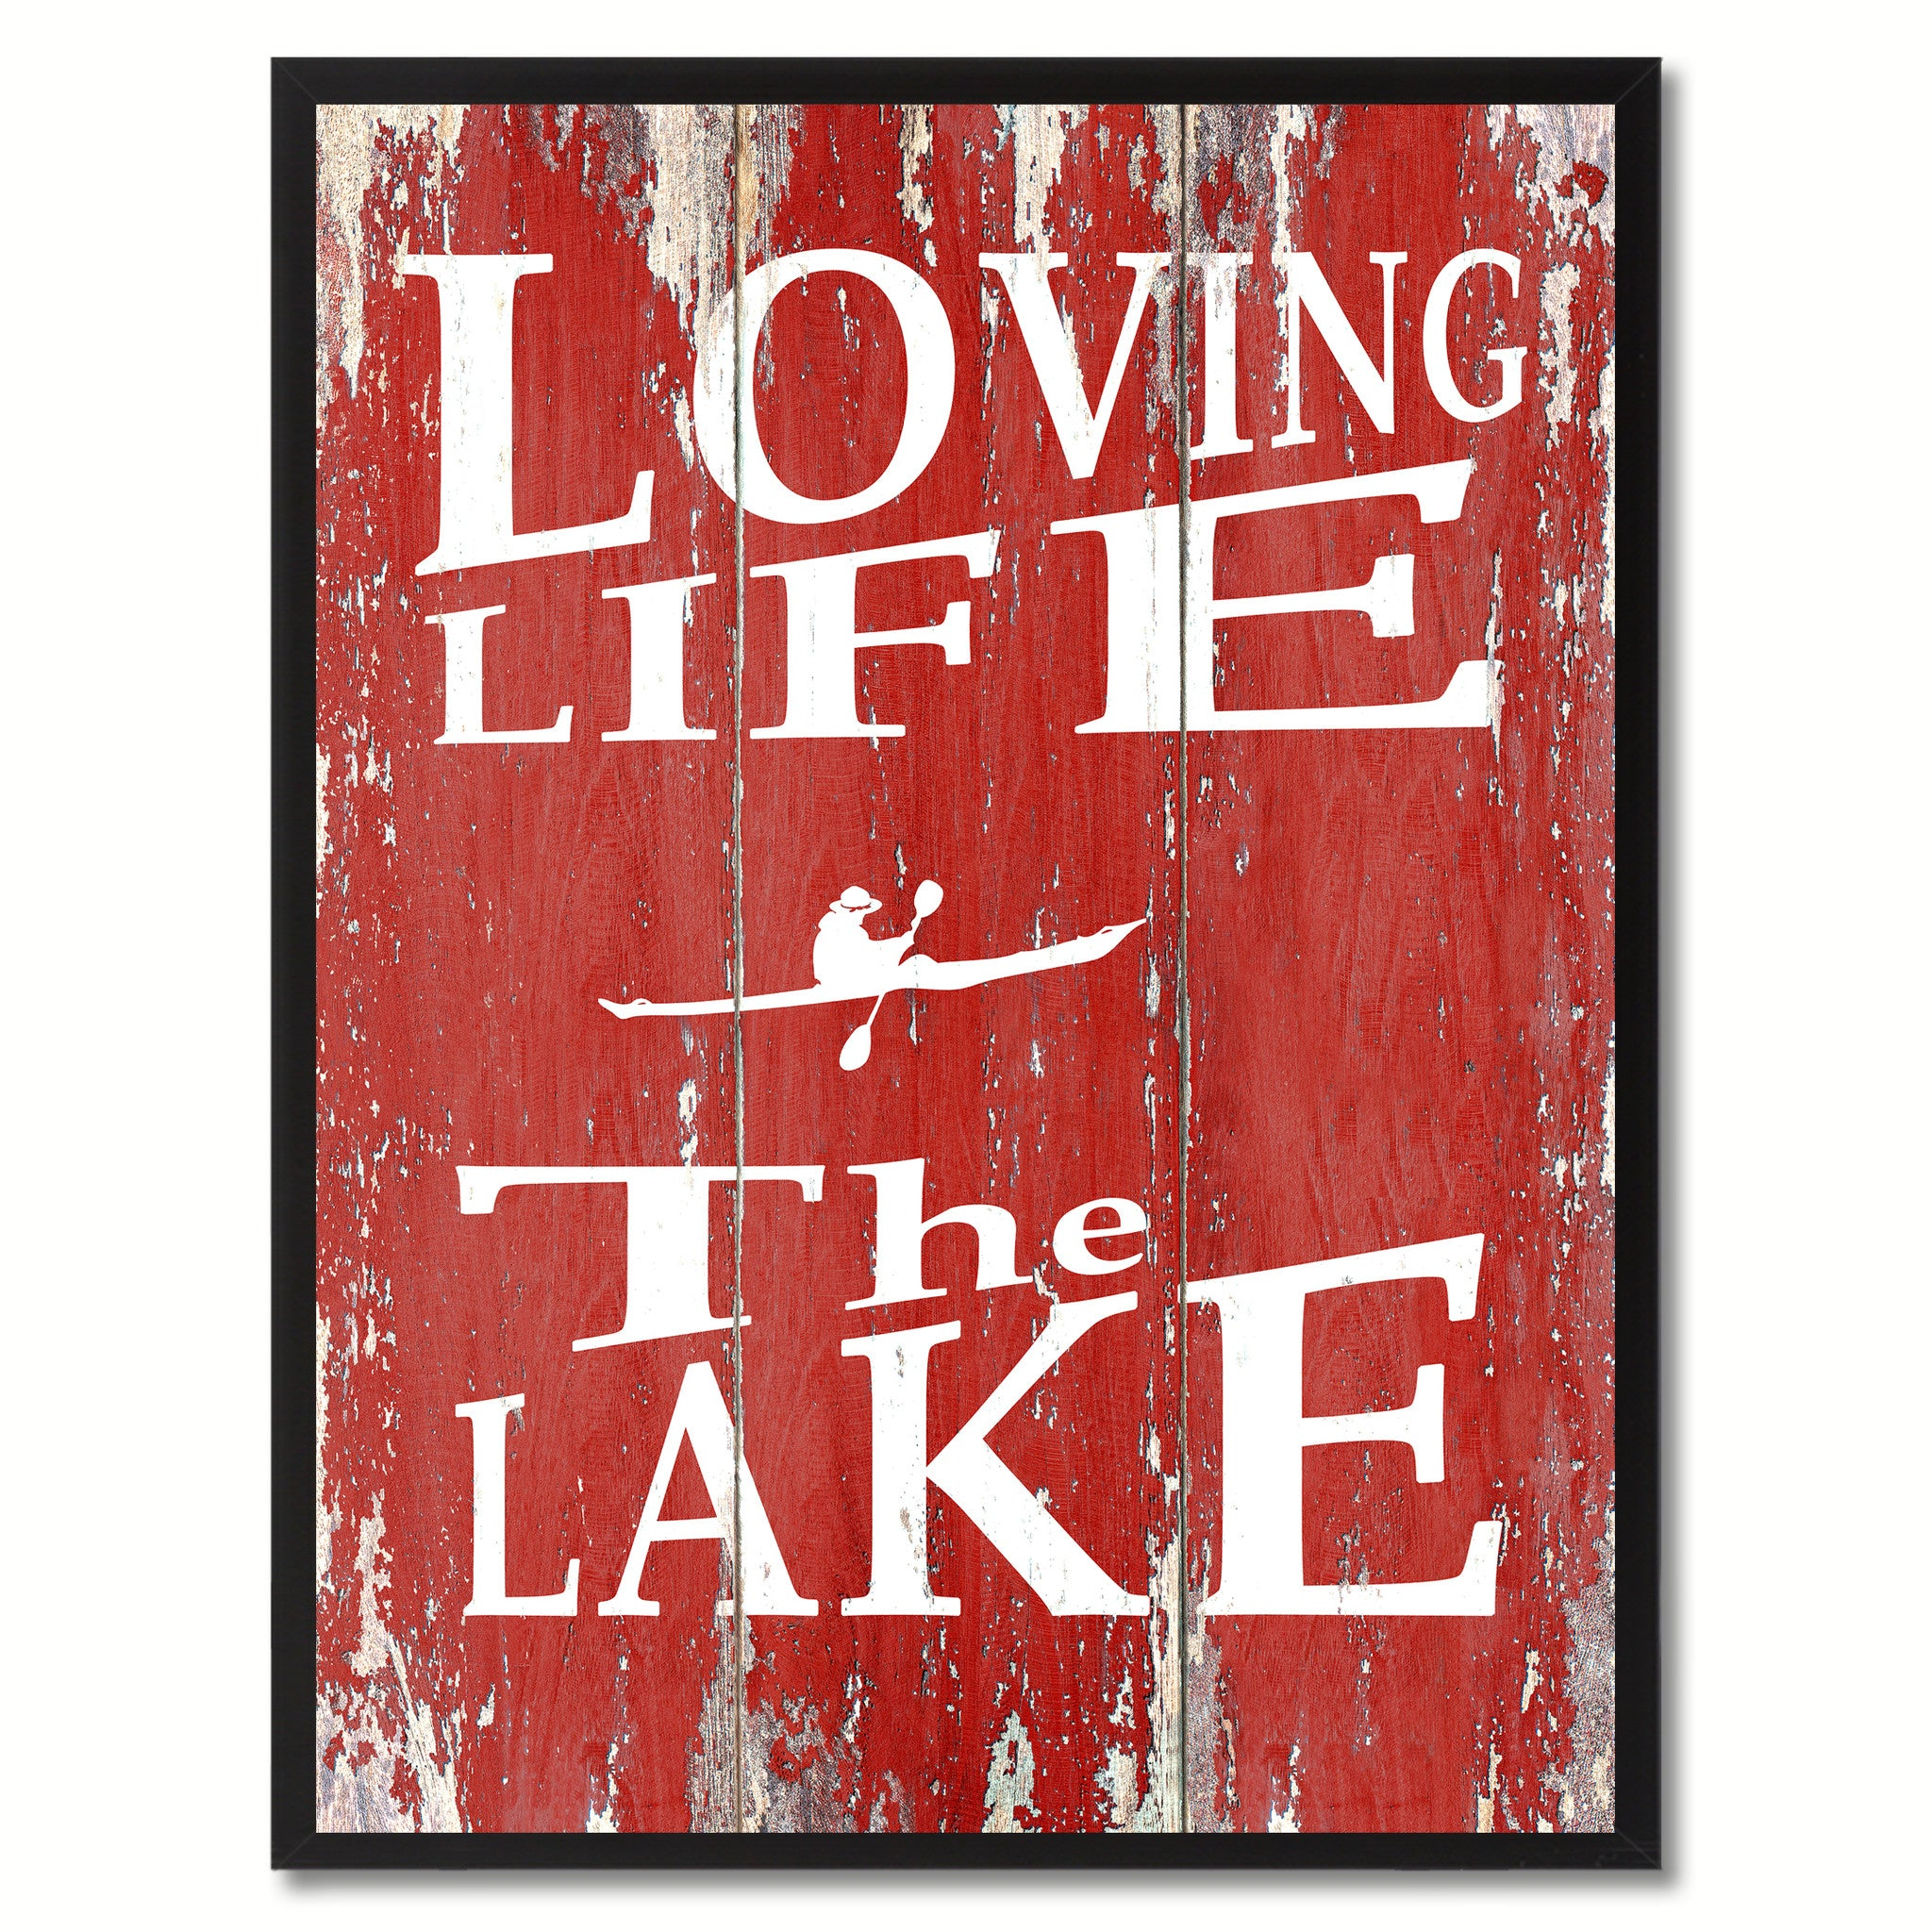 Loving Life The Lake Saying Canvas Print, Black Picture Frame Home Decor Wall Art Gifts